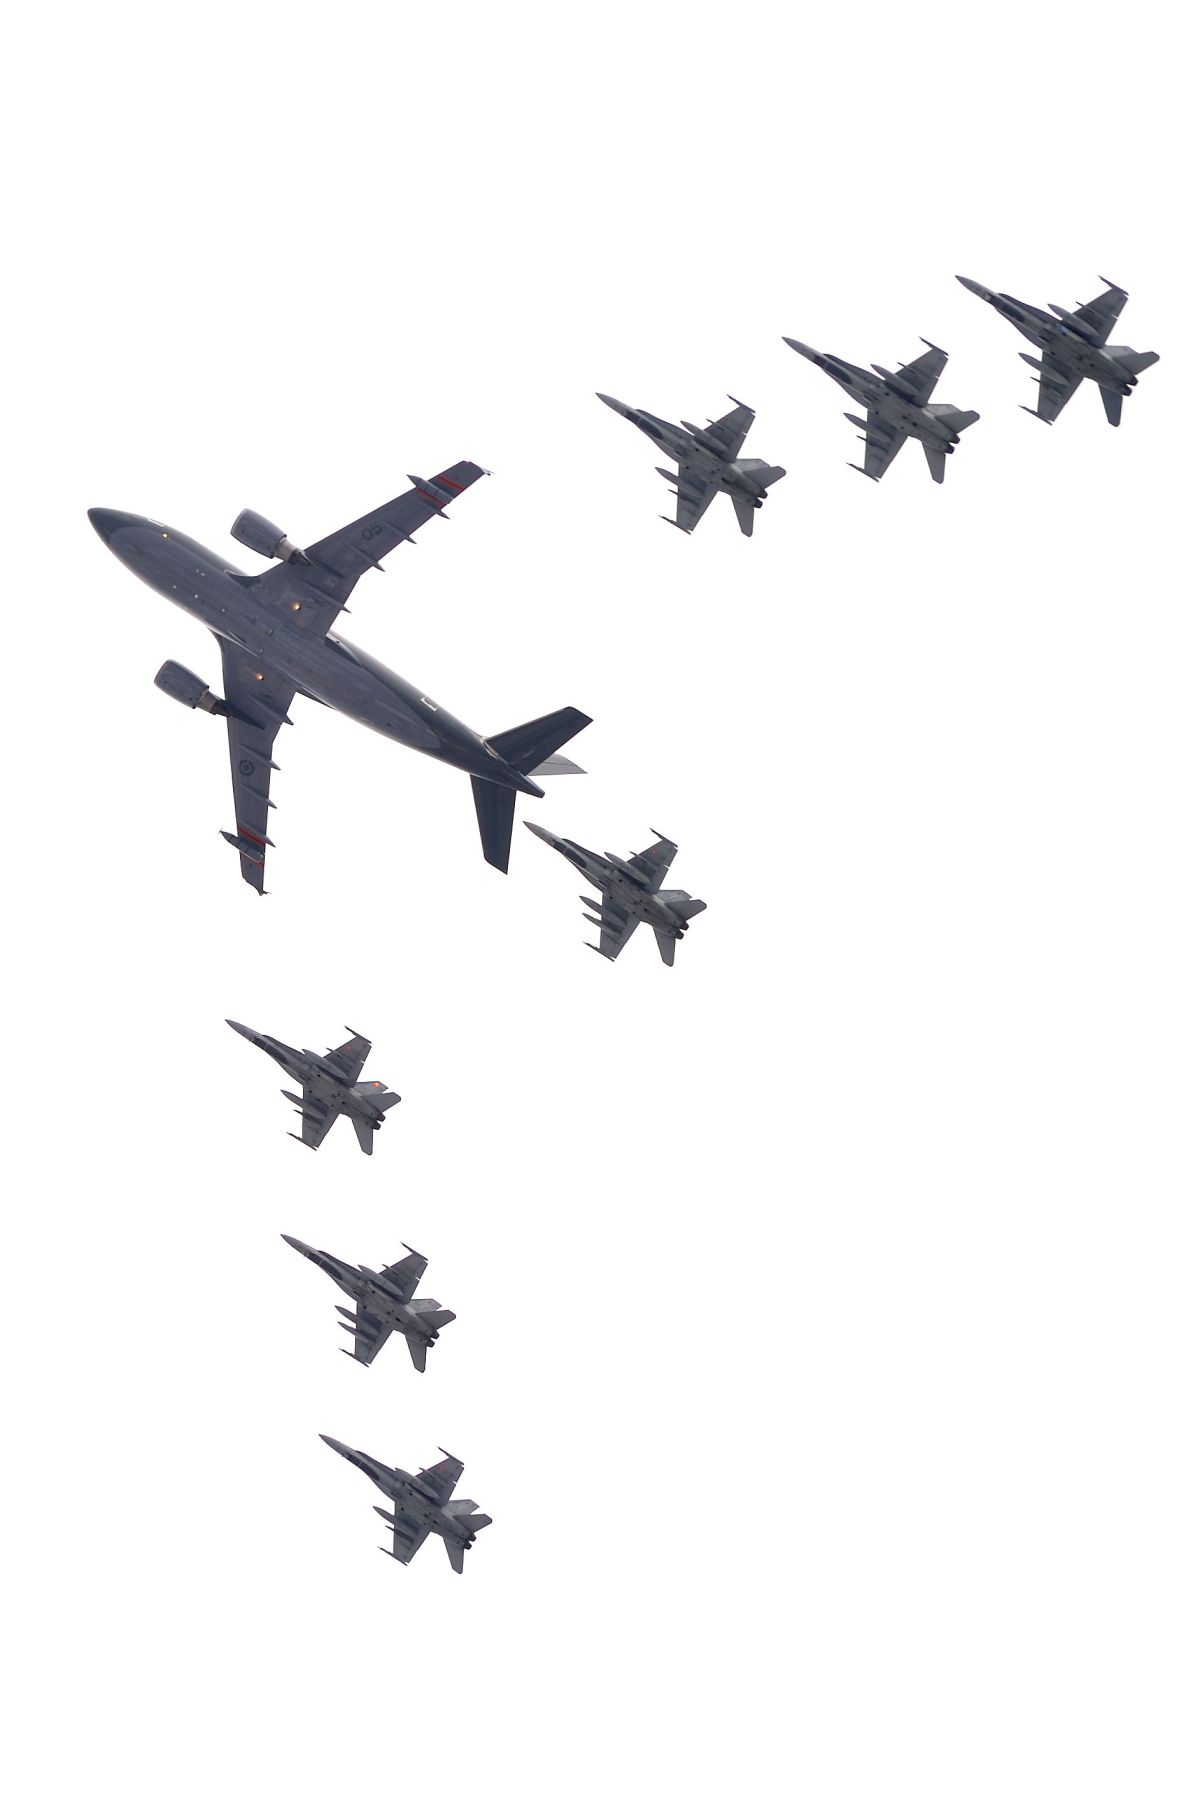 A flypast flew over Parliament Hill.